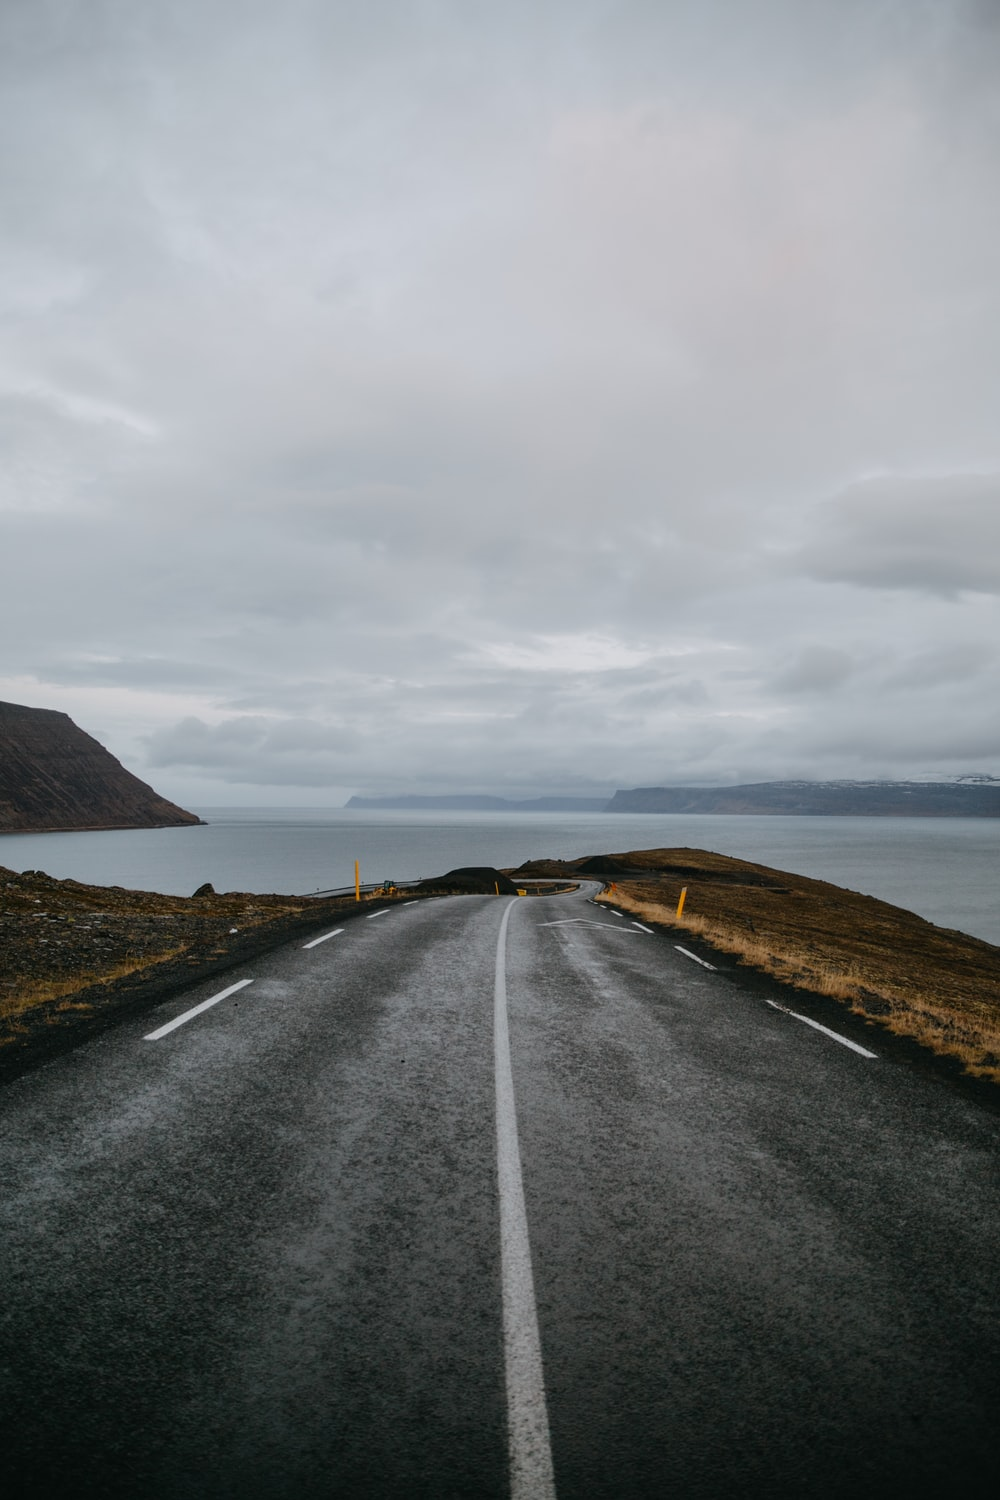 gray asphalt road going on the body of water